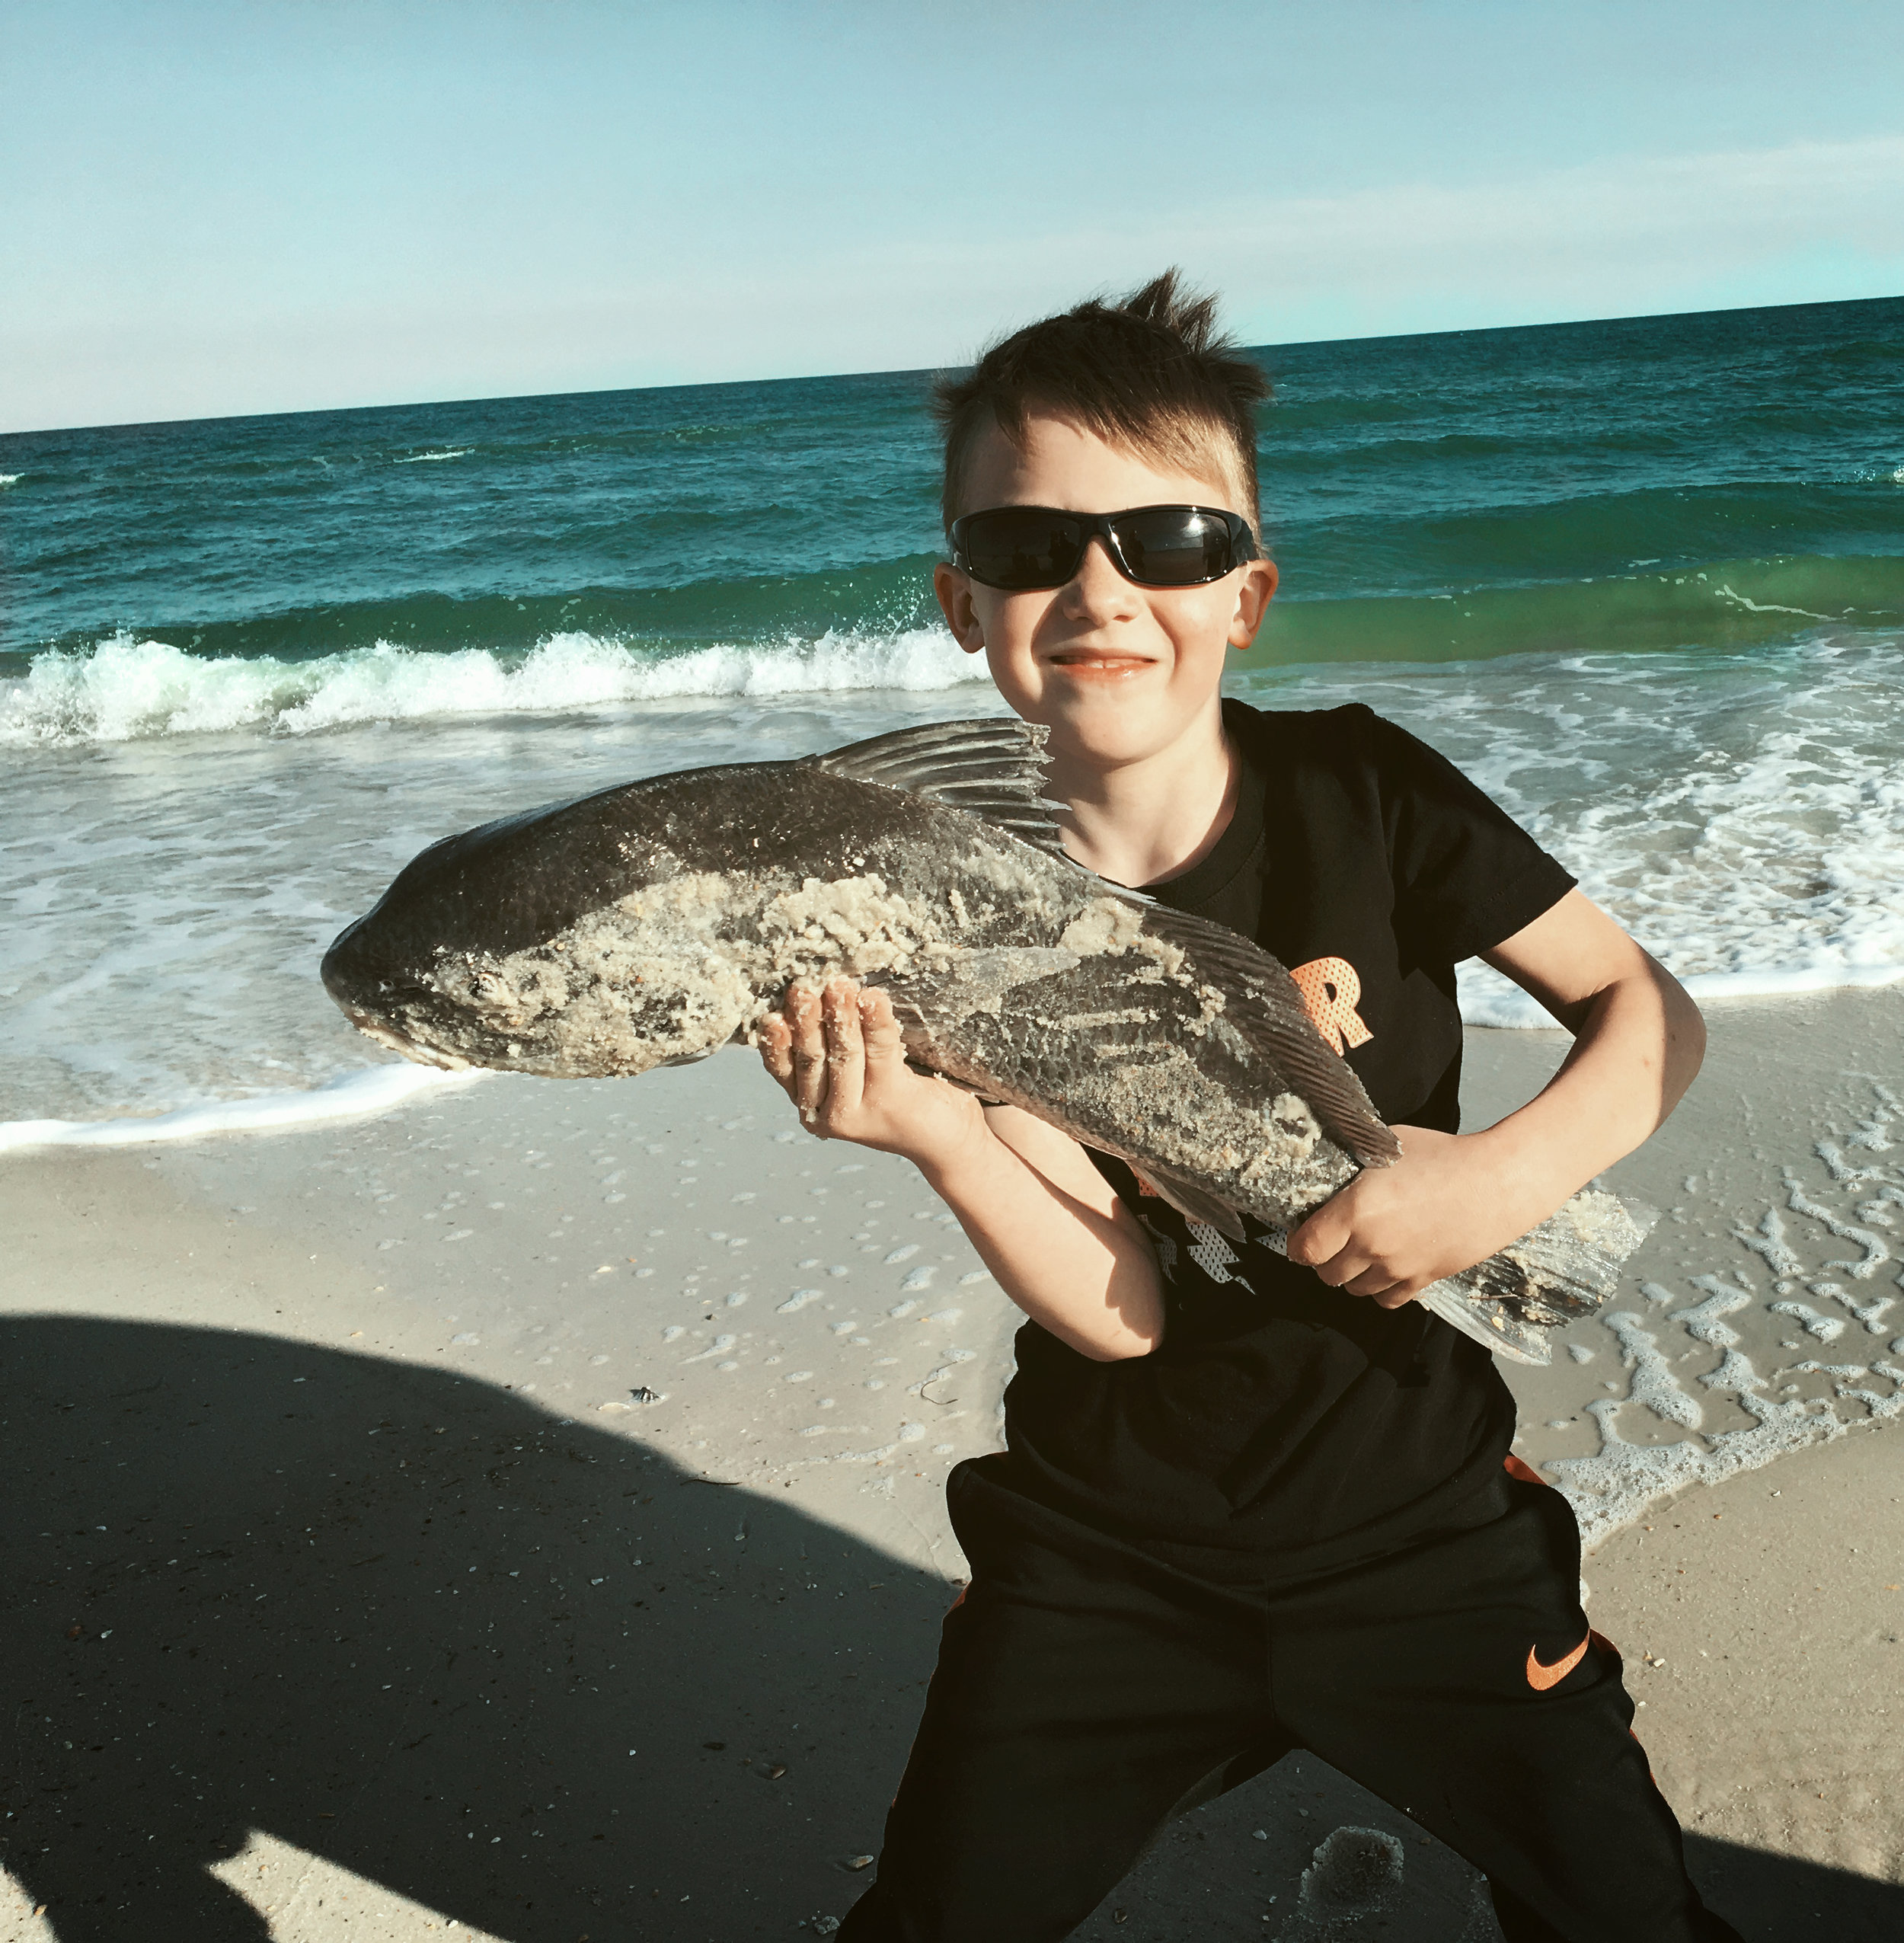 Nace - I love fishing, swimming, boogie boarding, playing with my brother and sisters, helping others, and going on wild adventures. I love my family and who I am. My favorite food is ice cream. So far, the ocean is my favorite playground.